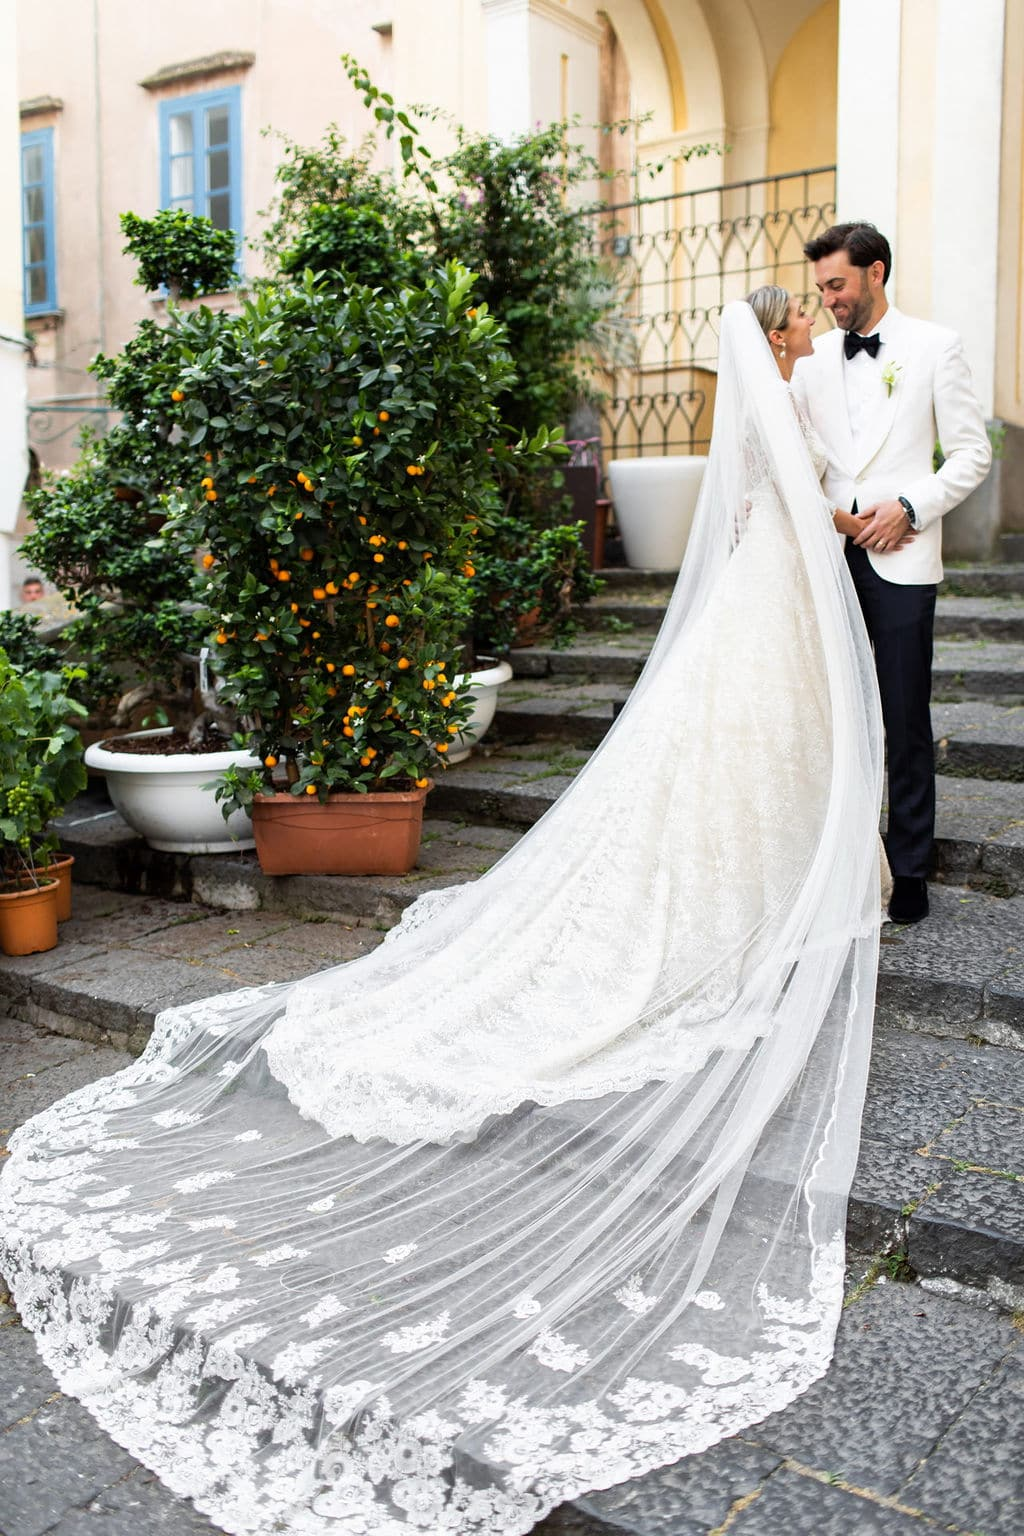 stunning long lace veil on bride kissing groom in front of bush with flowers in italy